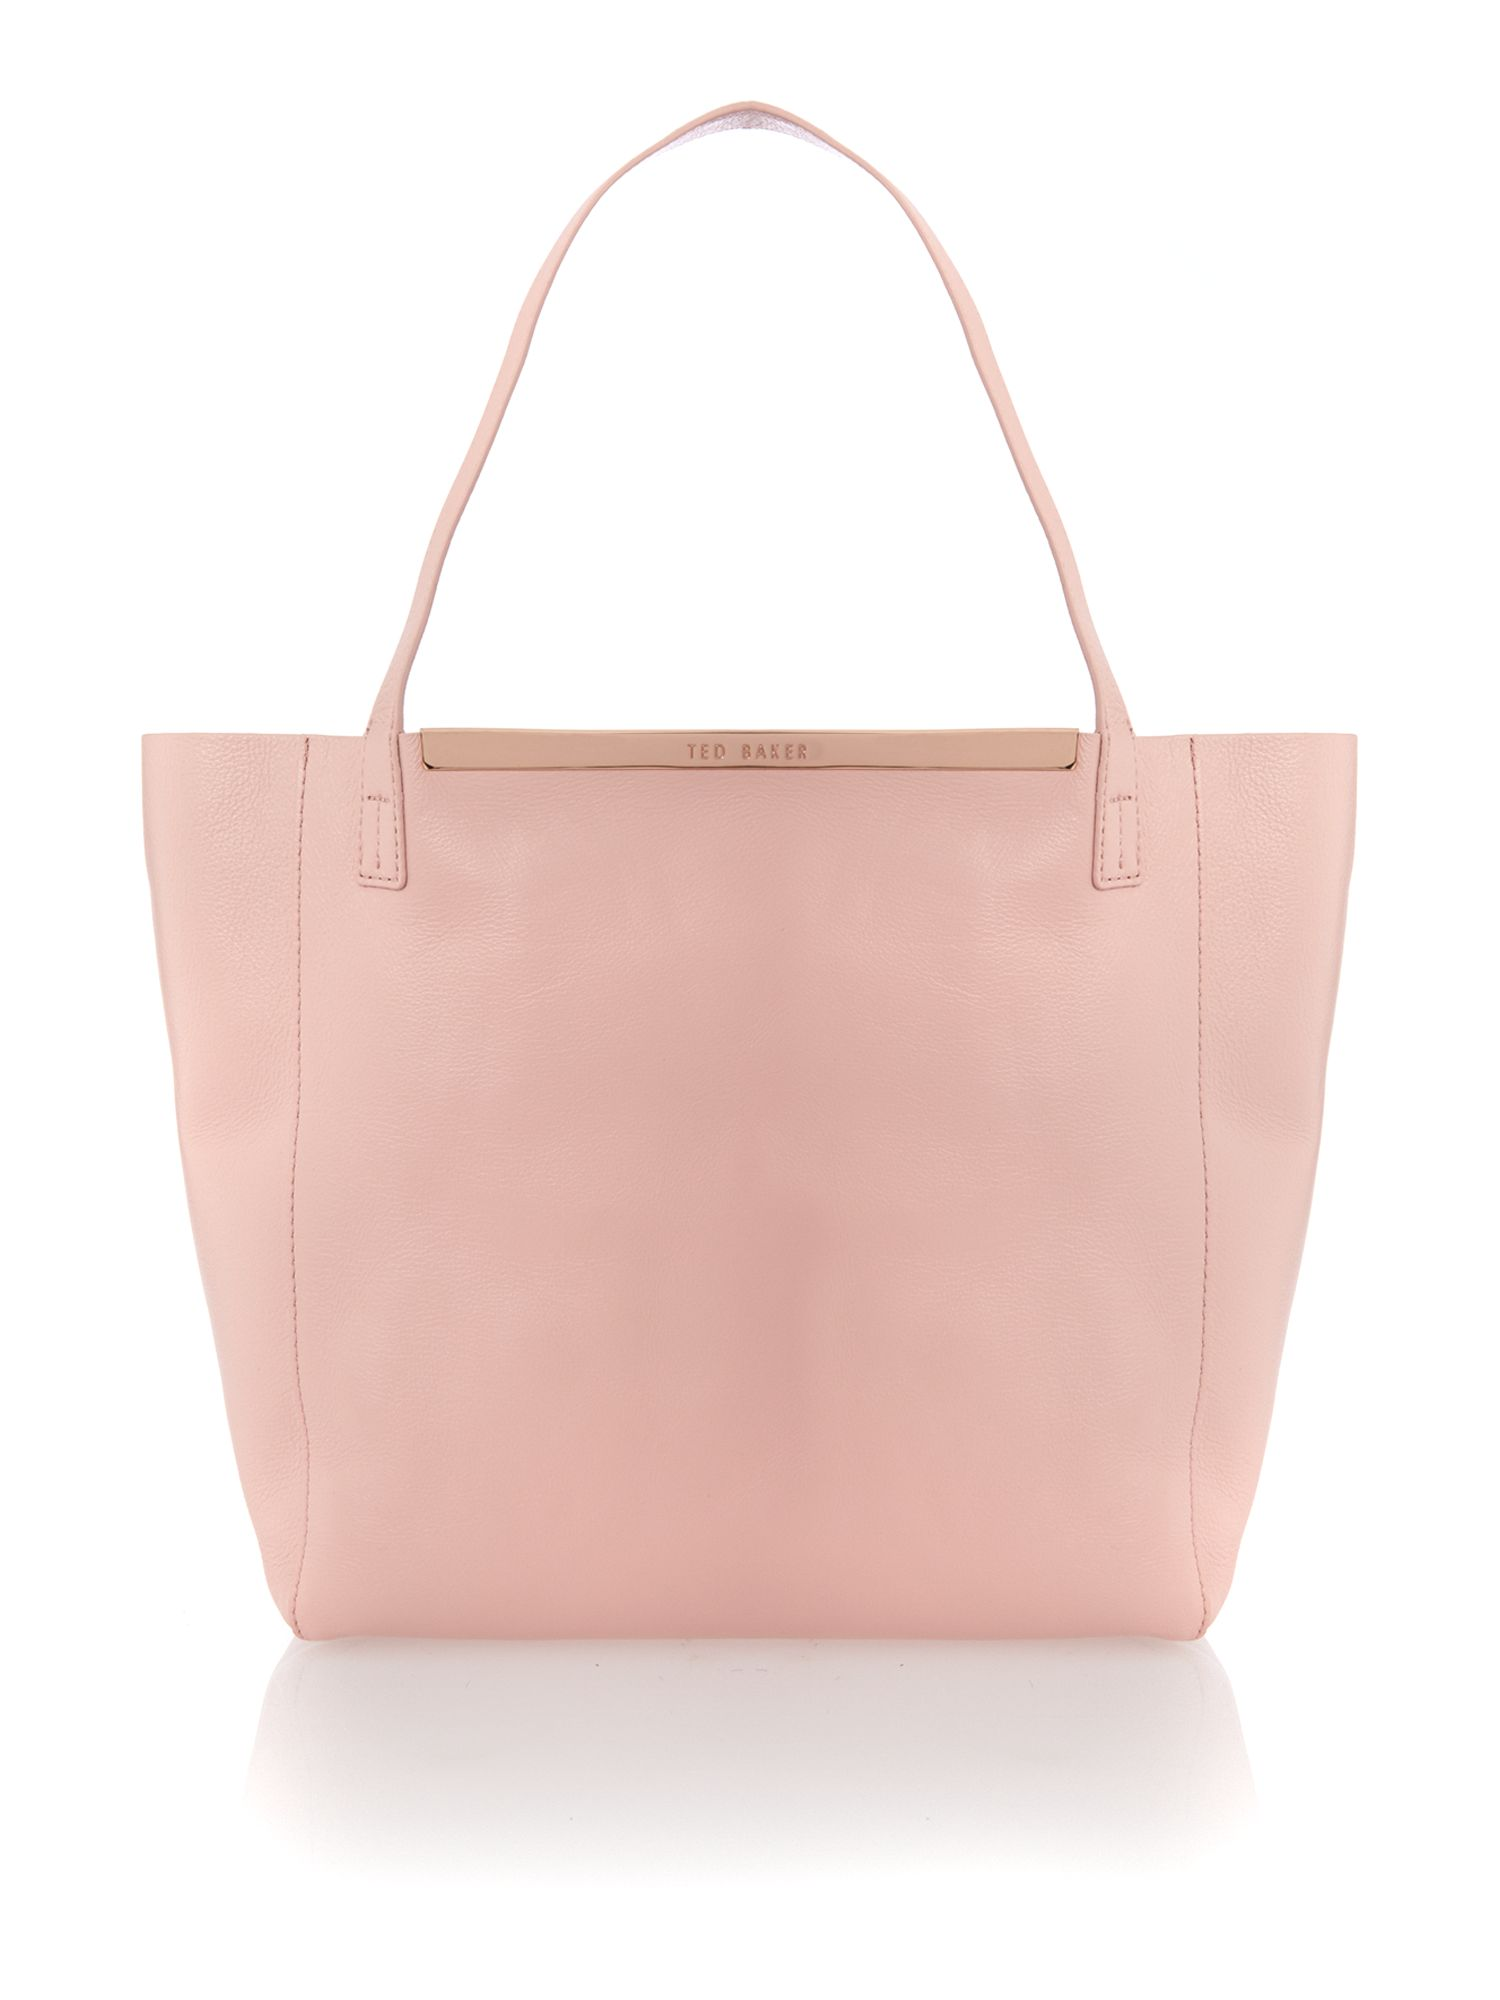 Pink large reversible tote bag